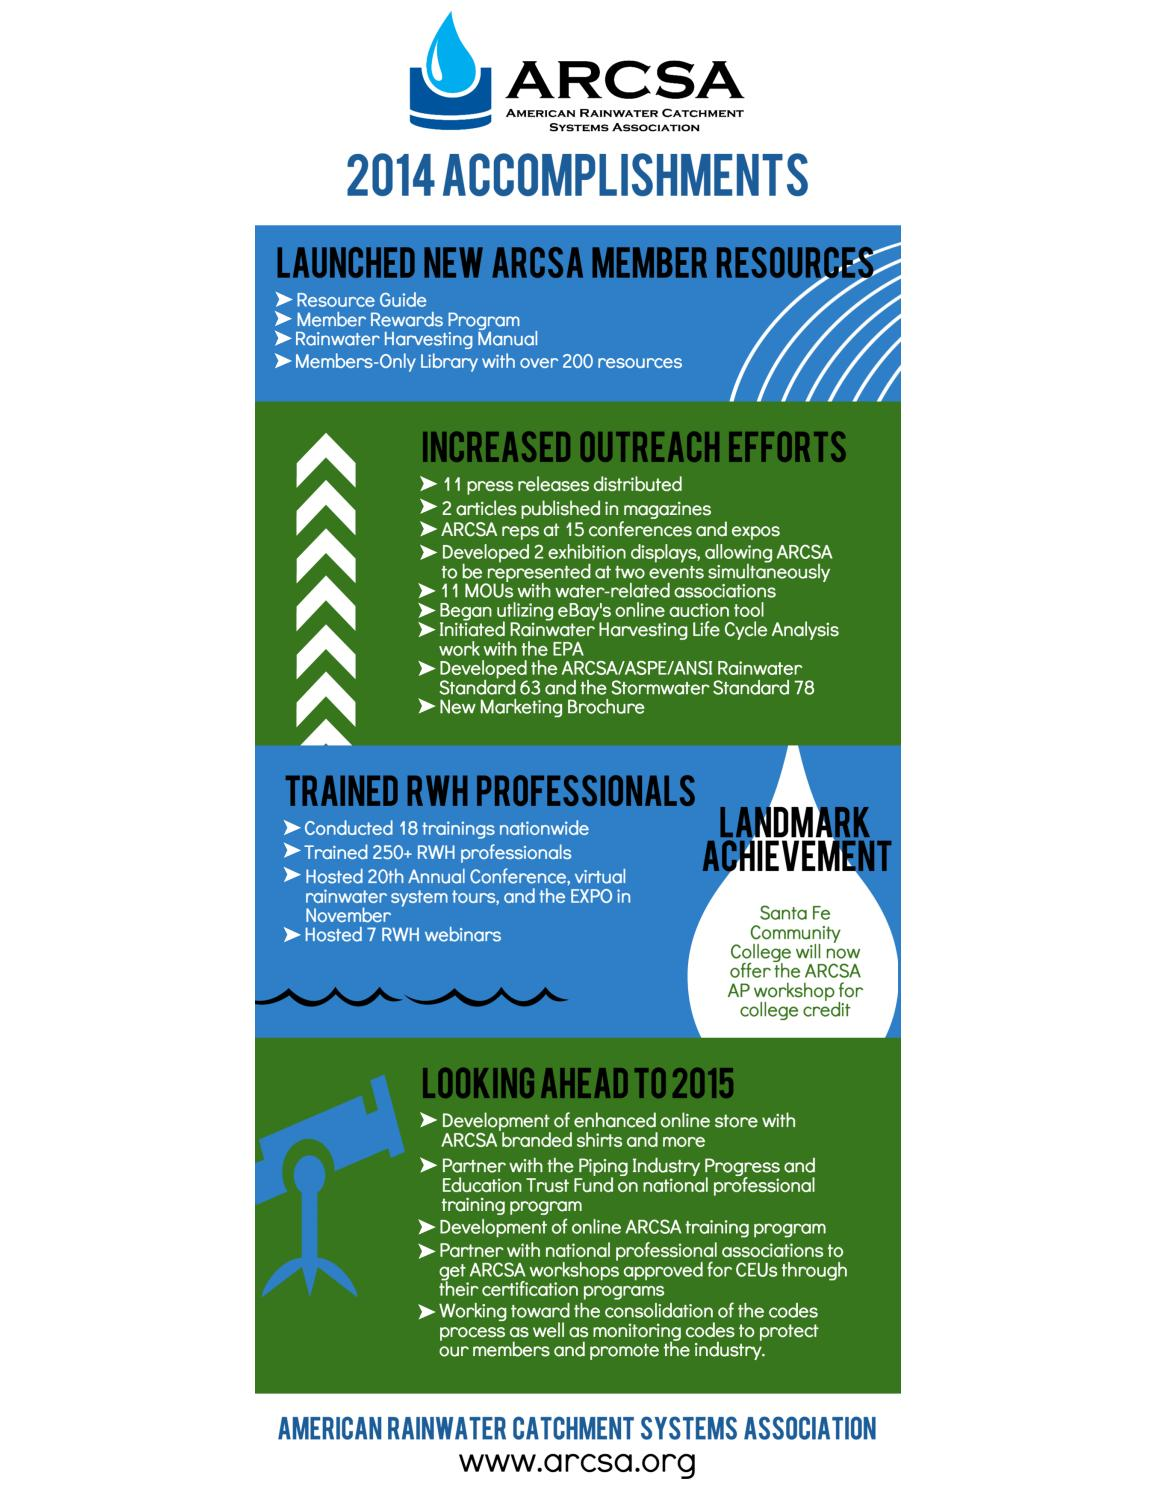 ARCSA Annual Report Infographic 2014 by ThinkBIGConsulting